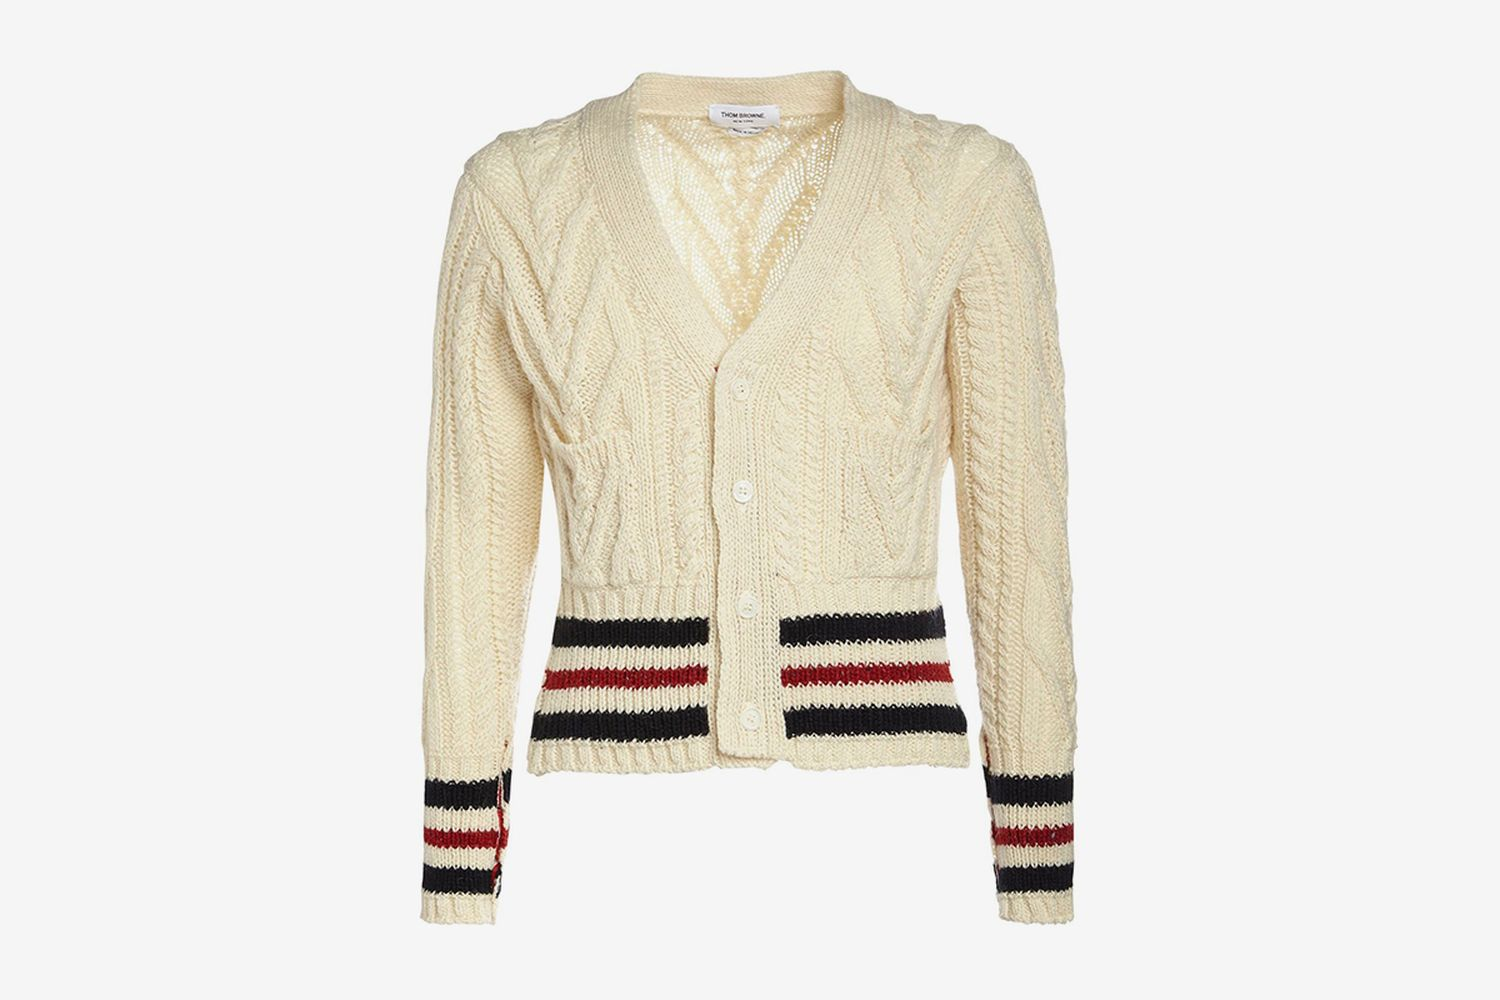 Wool Aran Cable Knit Cardigan